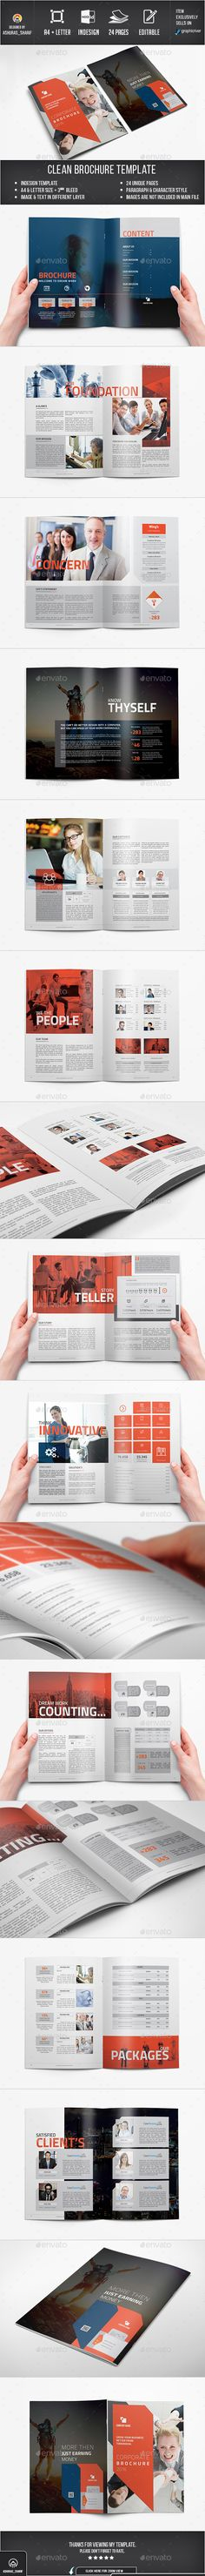 Brochure — InDesign INDD #brochure #identity • Available here → https://graphicriver.net/item/brochure/13439752?ref=pxcr